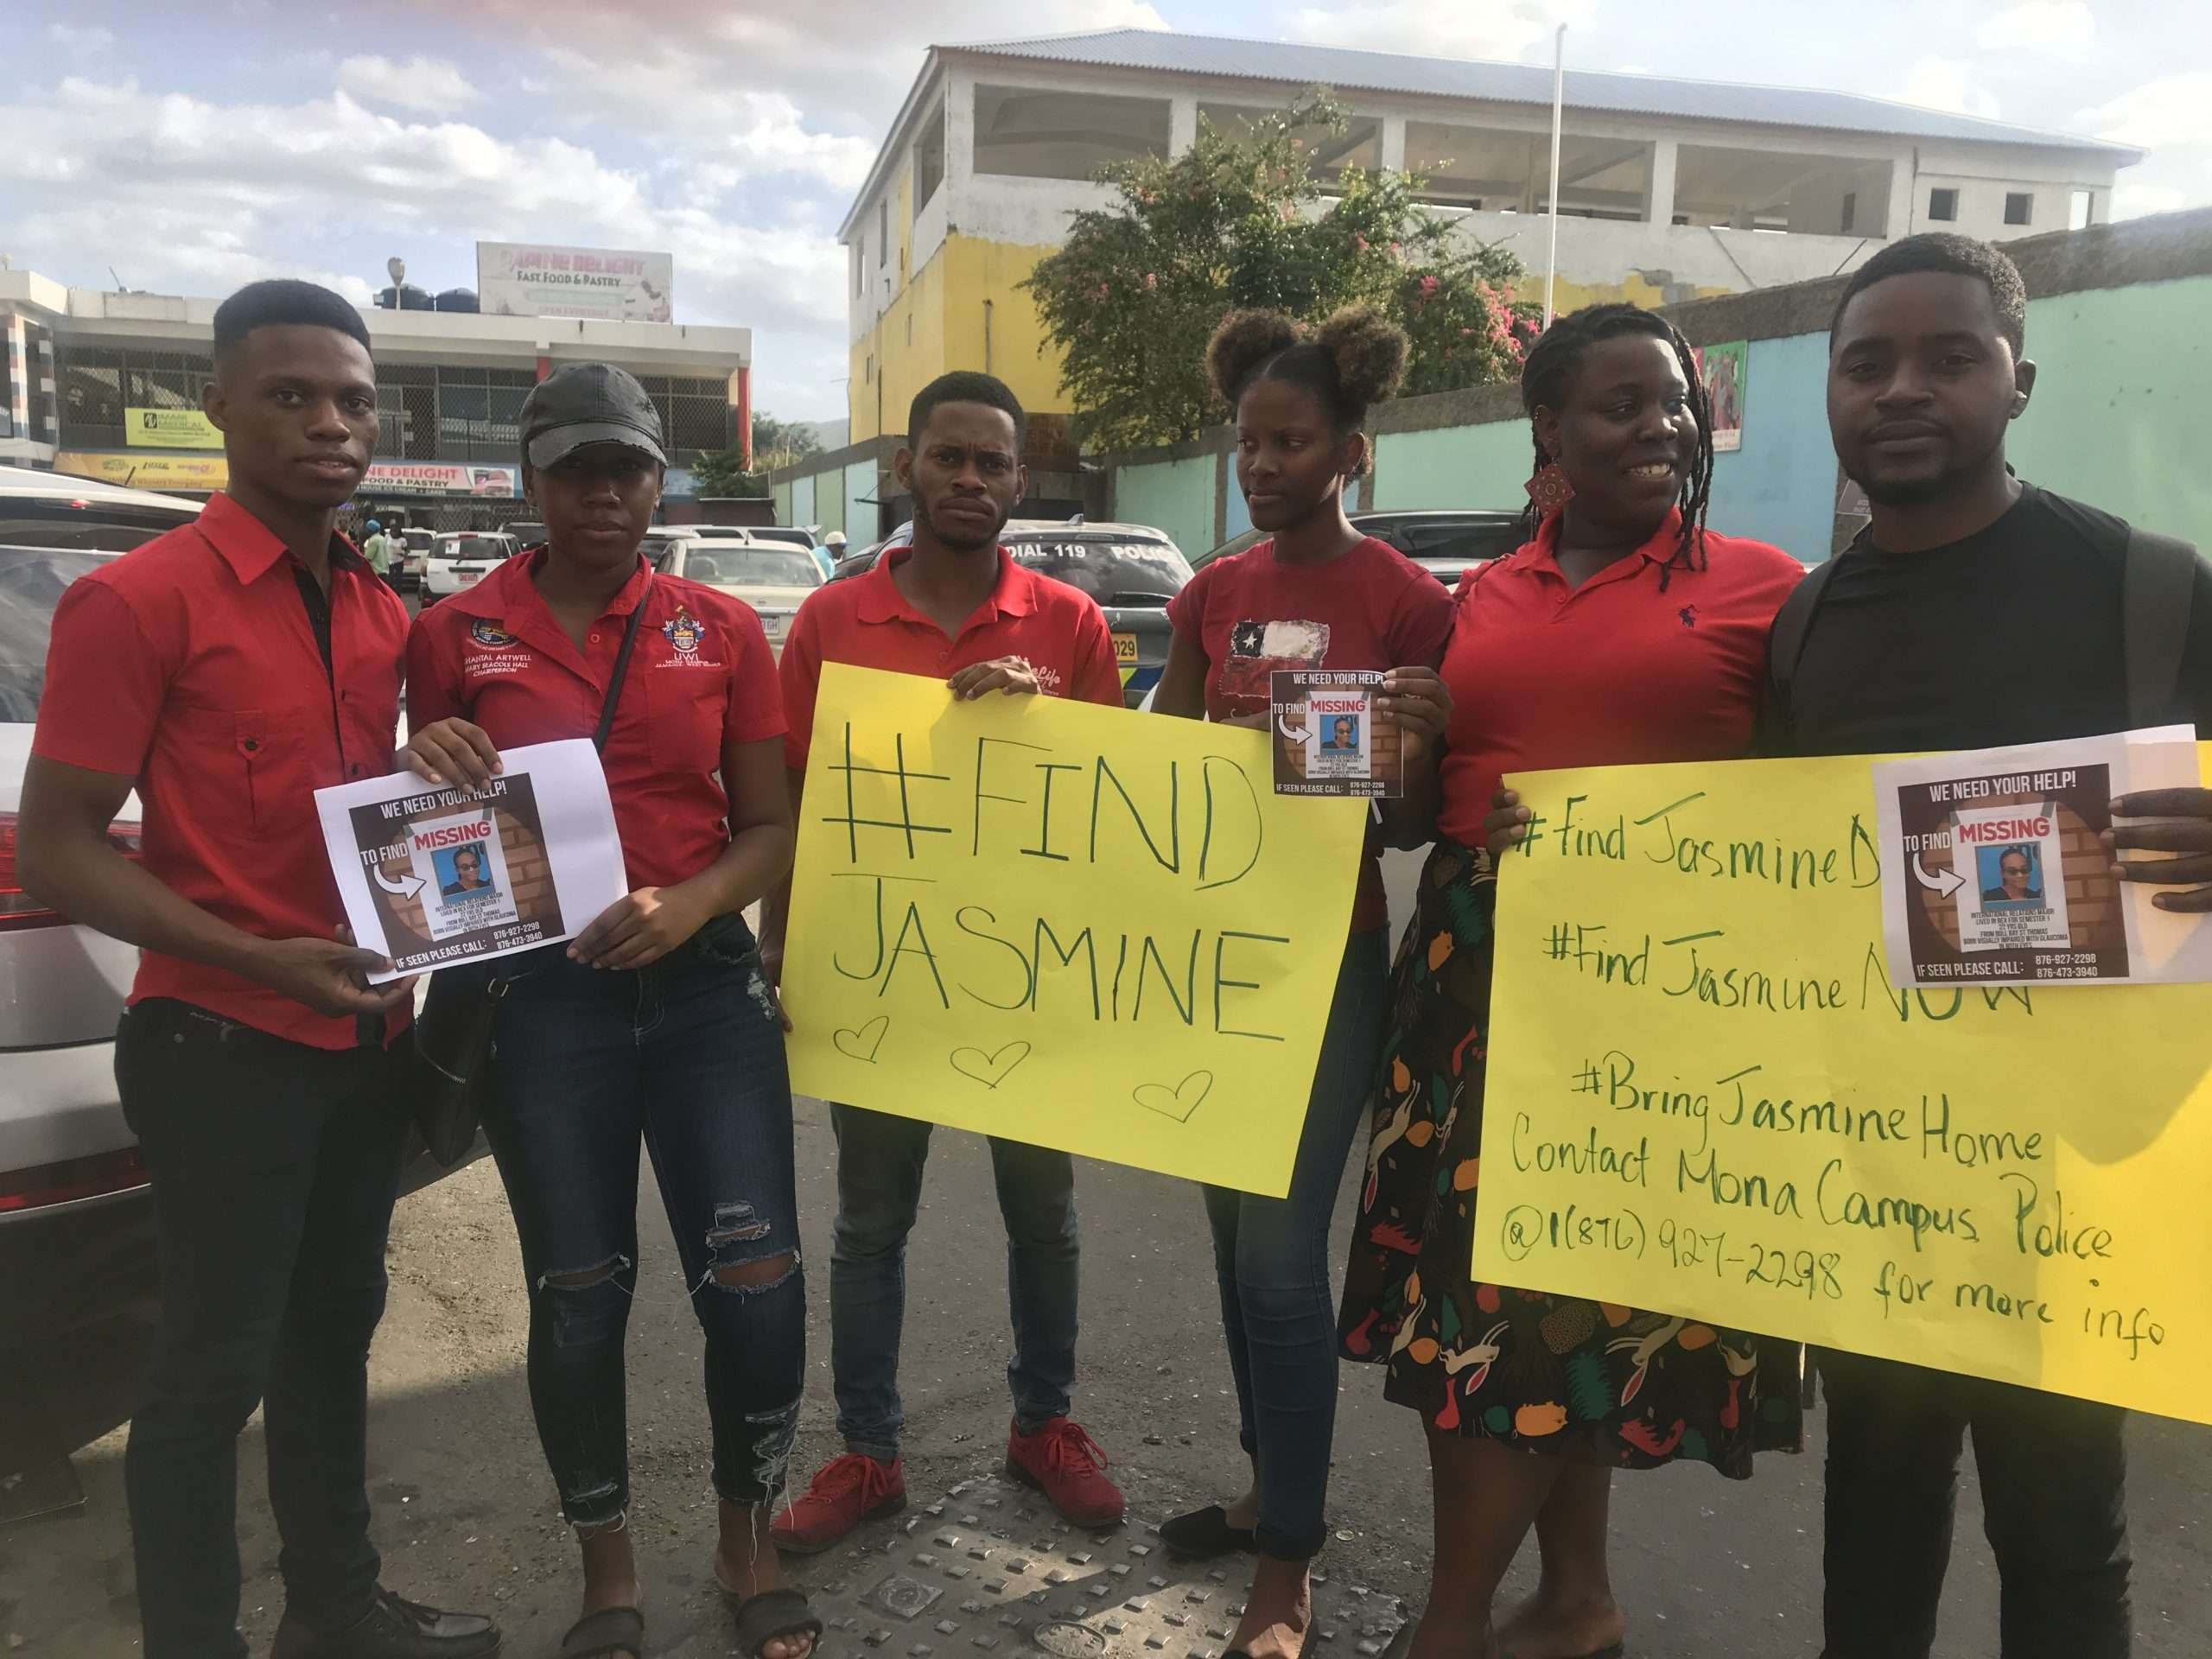 Search for Jasmine: Scores of UWI, Mona Students Hand Out Flyers in Effort to Find Missing Jasmine Deen